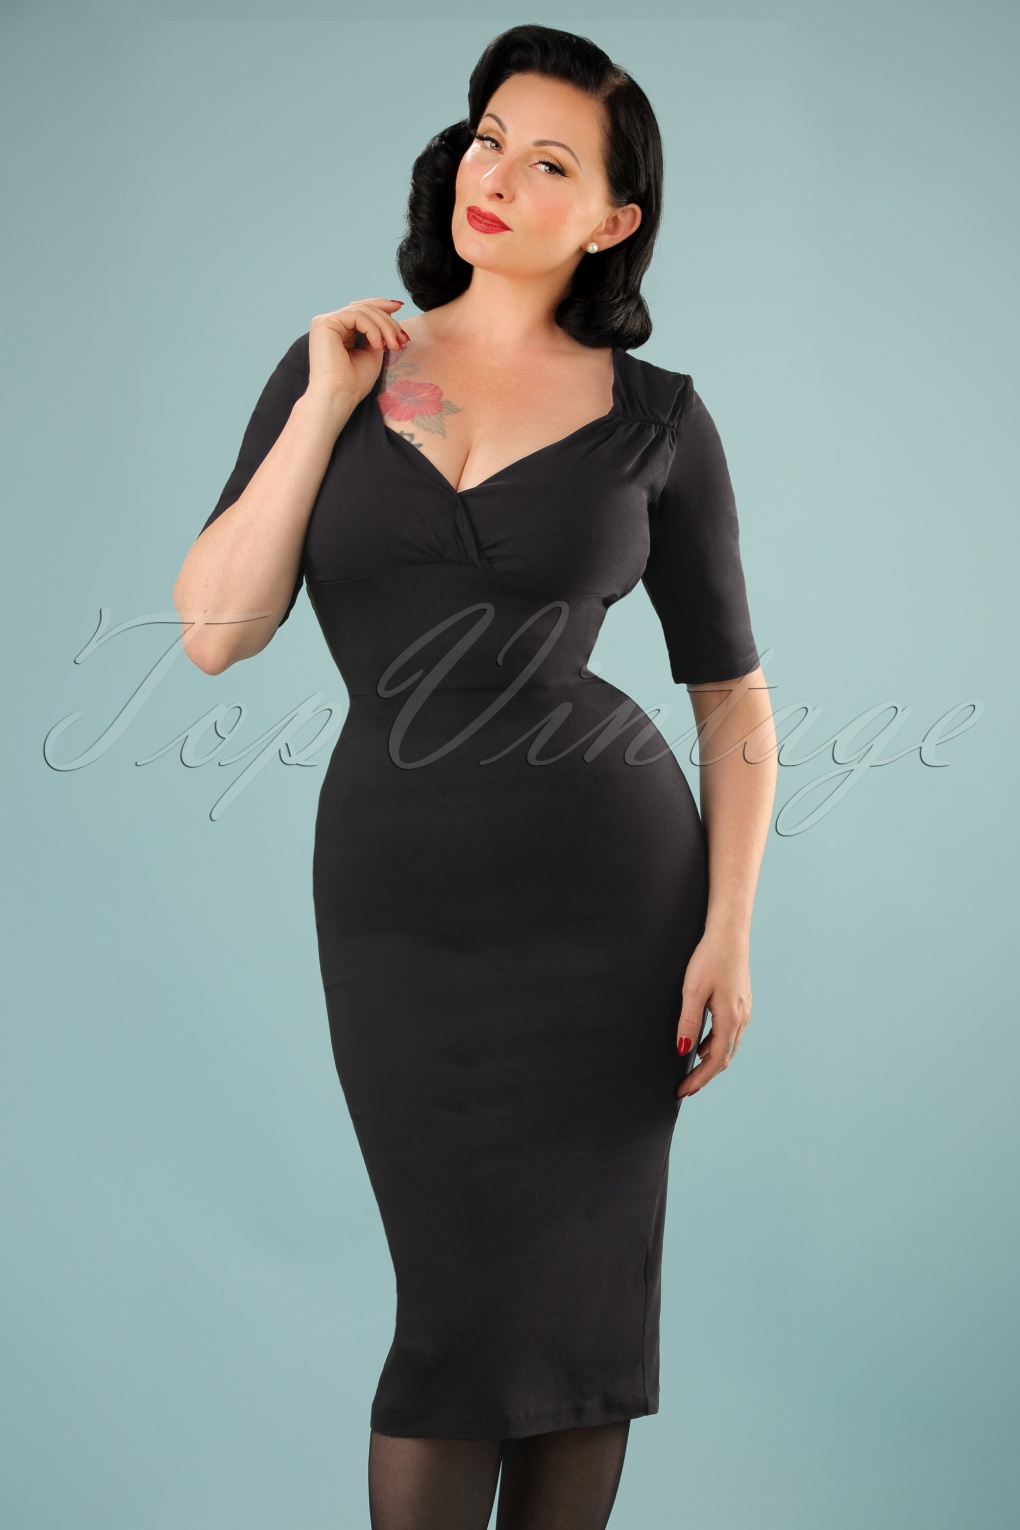 Wiggle Dresses | Pencil Dresses 50s Trixie Doll Pencil Dress in Black £50.15 AT vintagedancer.com